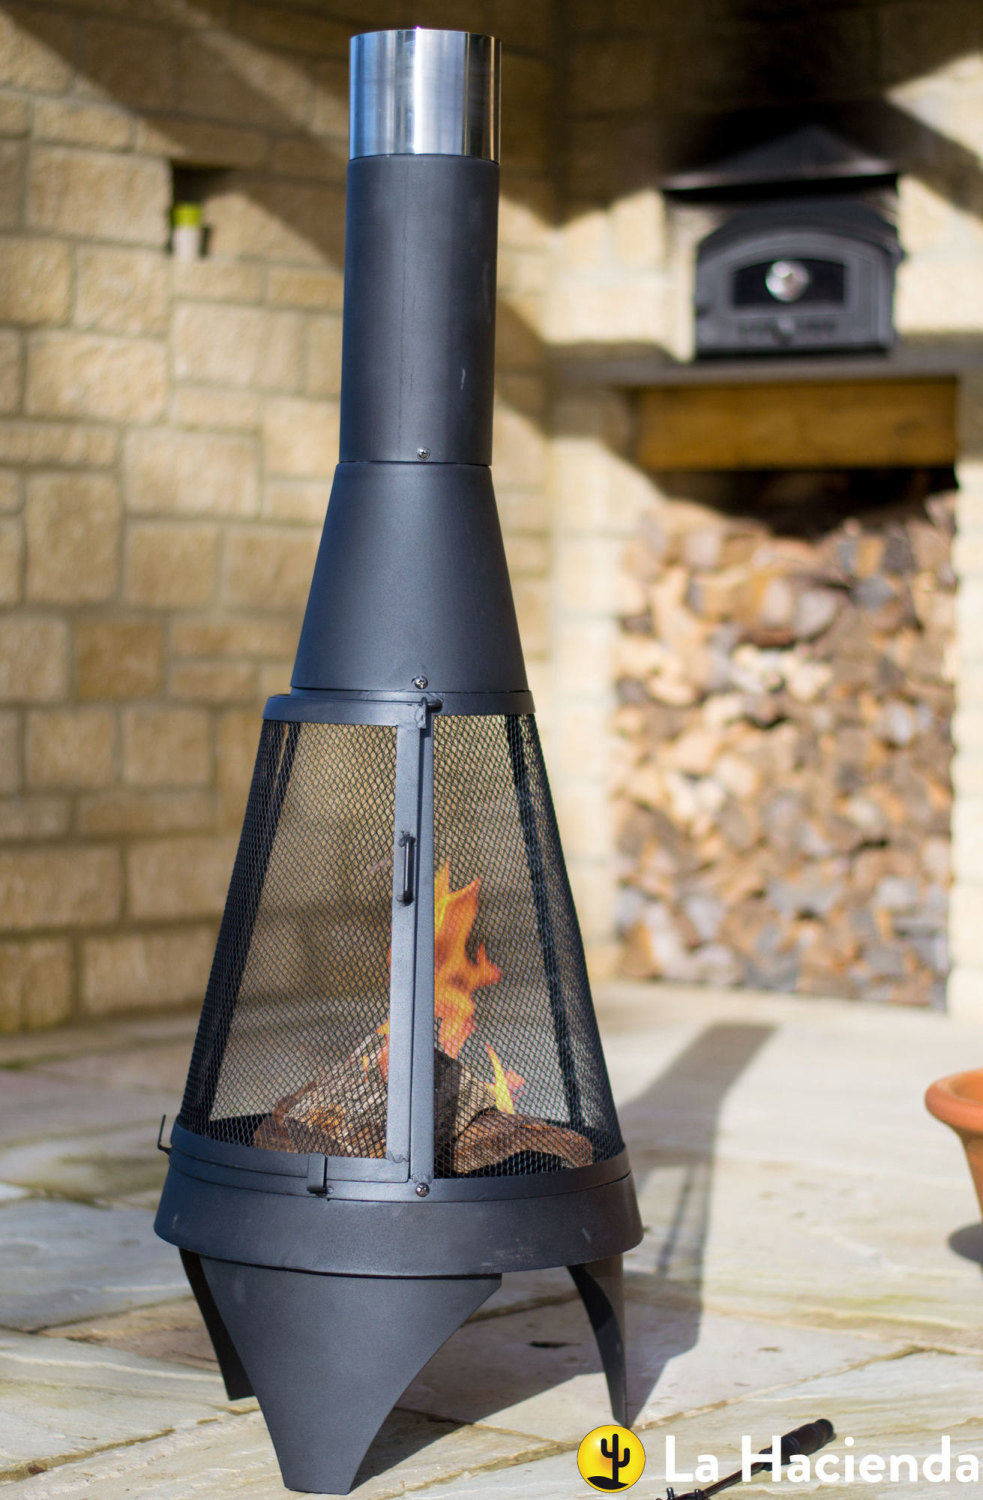 La Hacienda Mesh Colorado Medium Black Steel Garden Chimenea